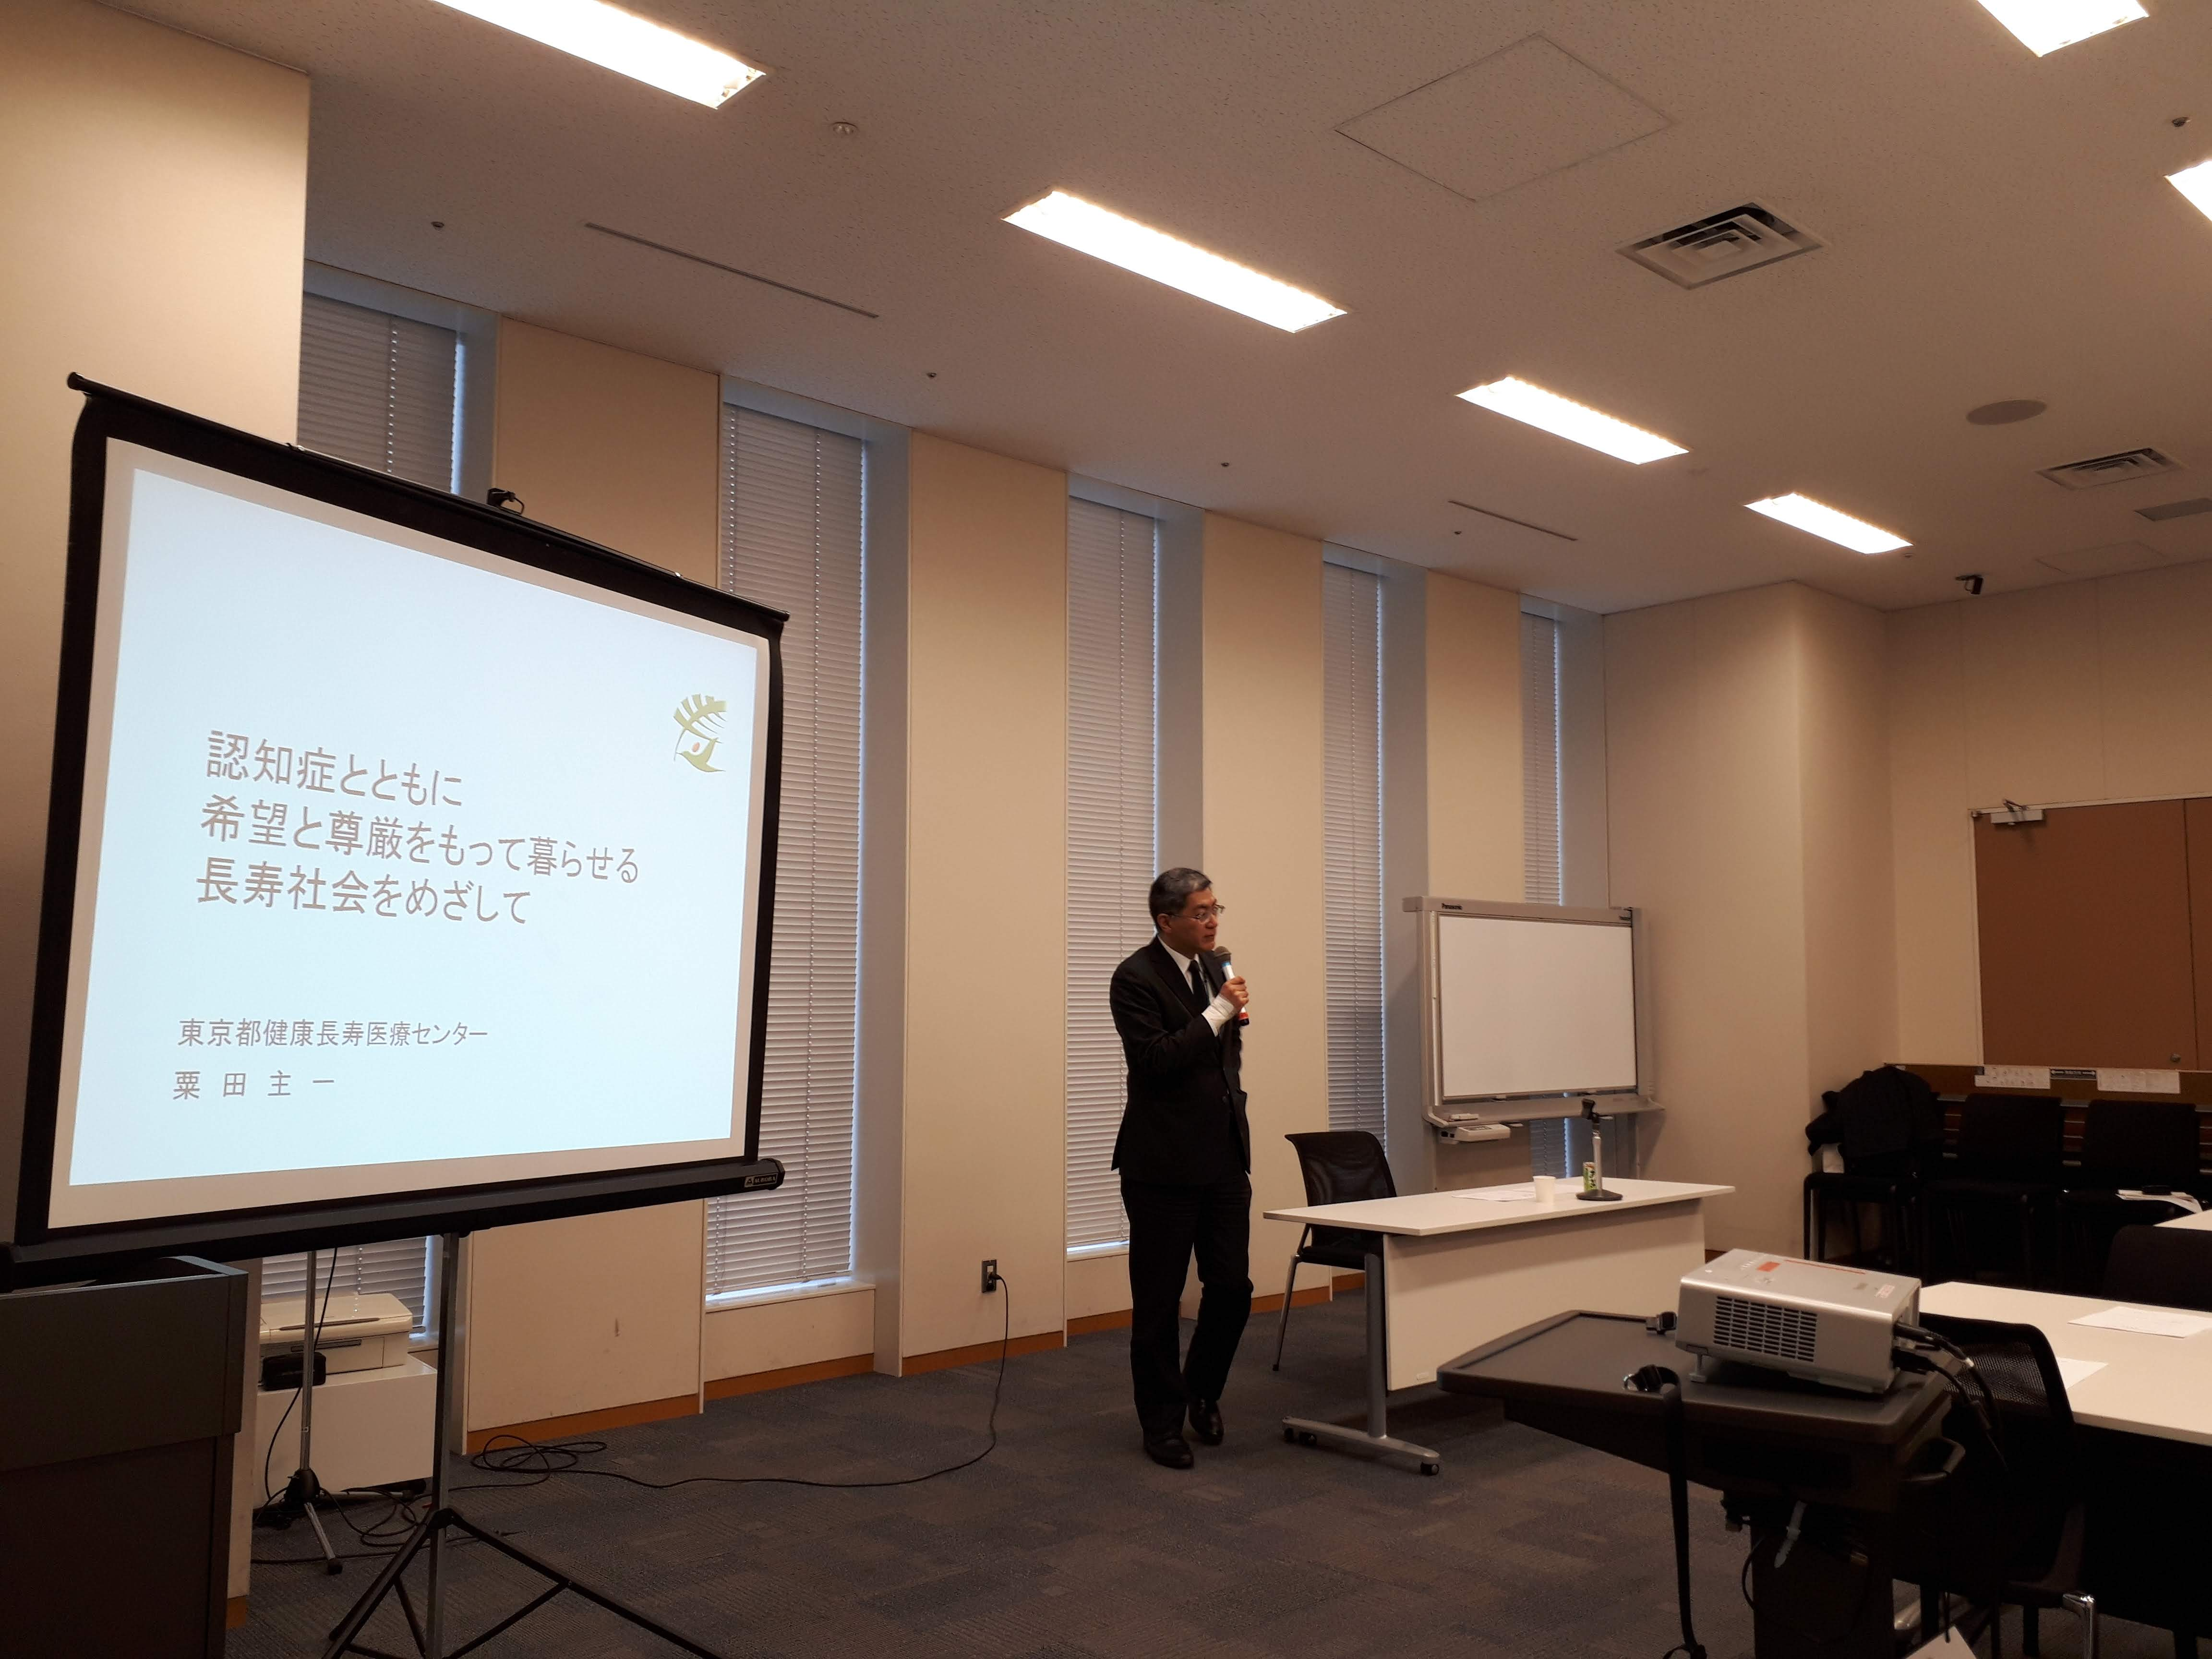 [Event report] Eighth session of the Diet Study Group on Dementia (March 27, 2019)